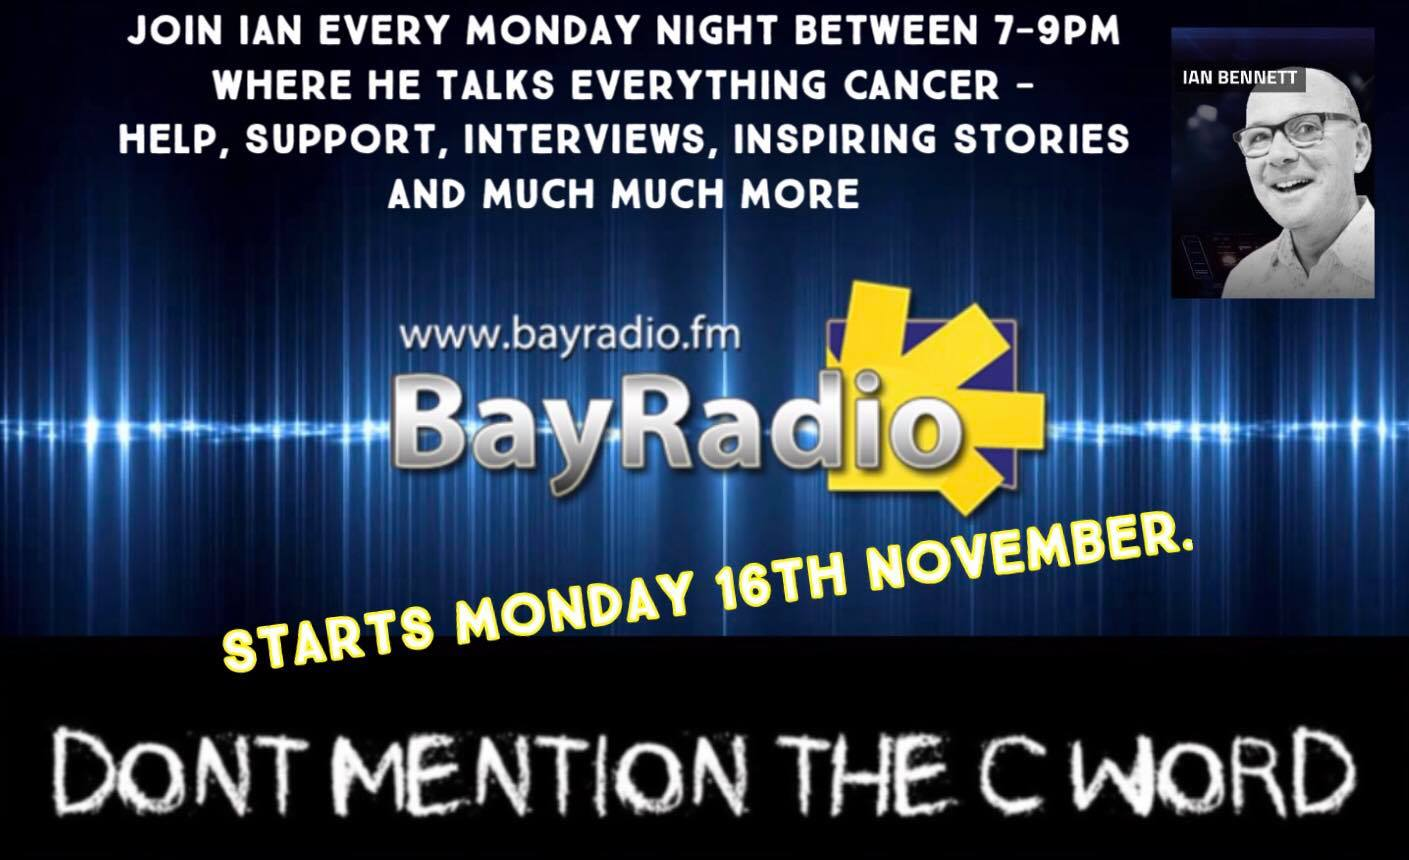 Ian Bennet Don't mention the C Word BayRadio Spain Cancer